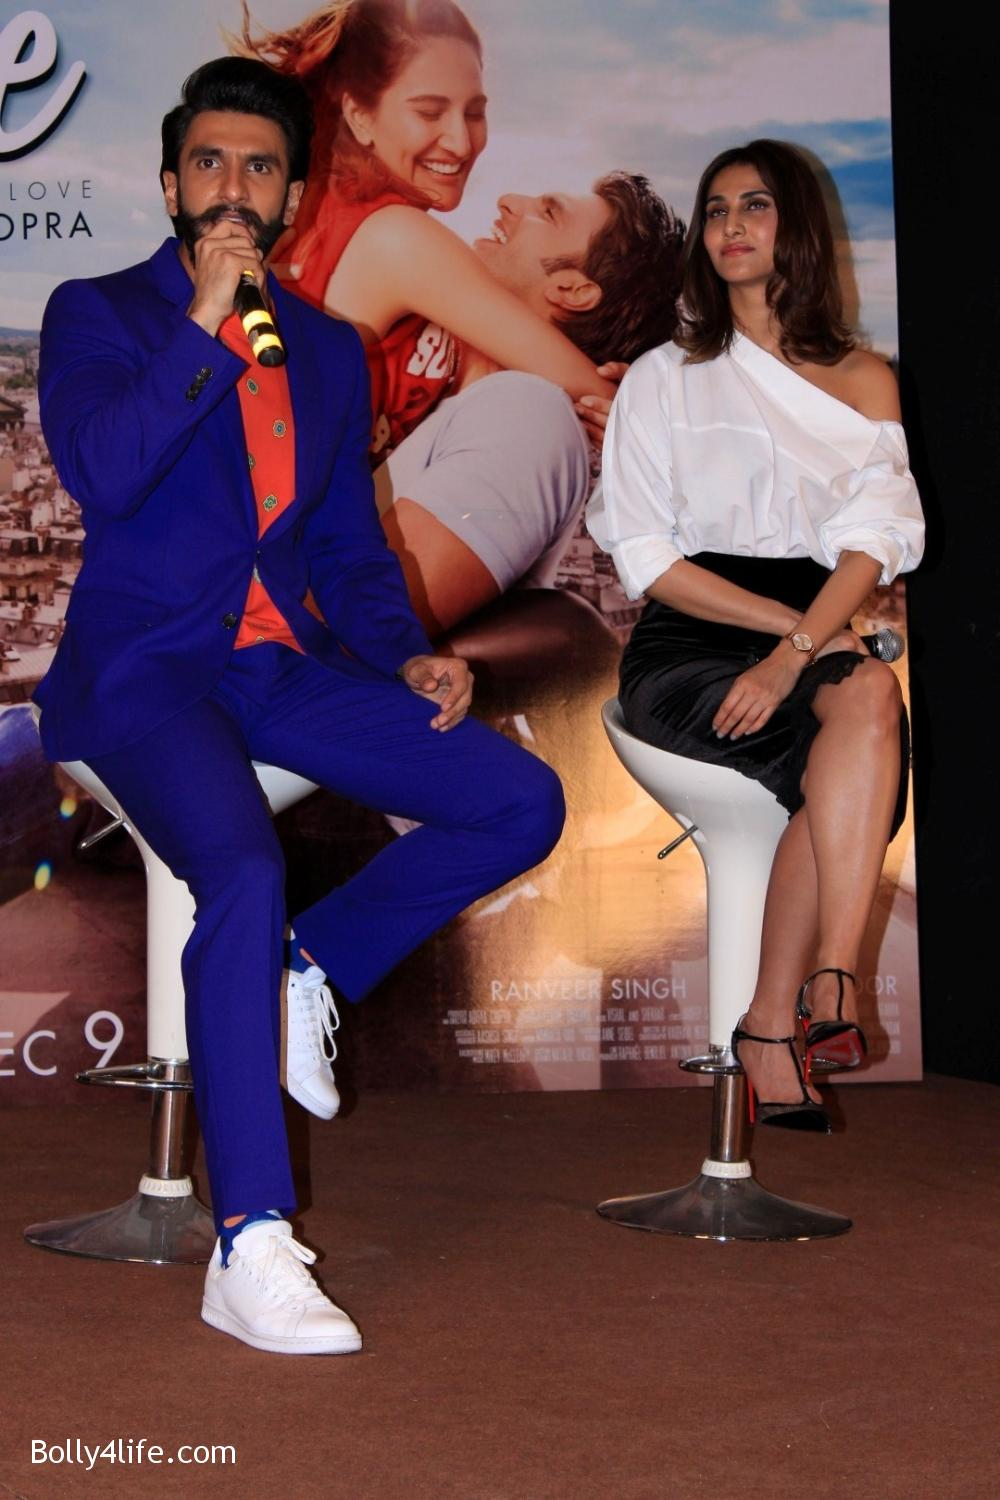 Ranveer-Singh-and-Vaani-Kapoor-during-the-song-launch-You-And-Me-from-film-Befikre-1.jpg